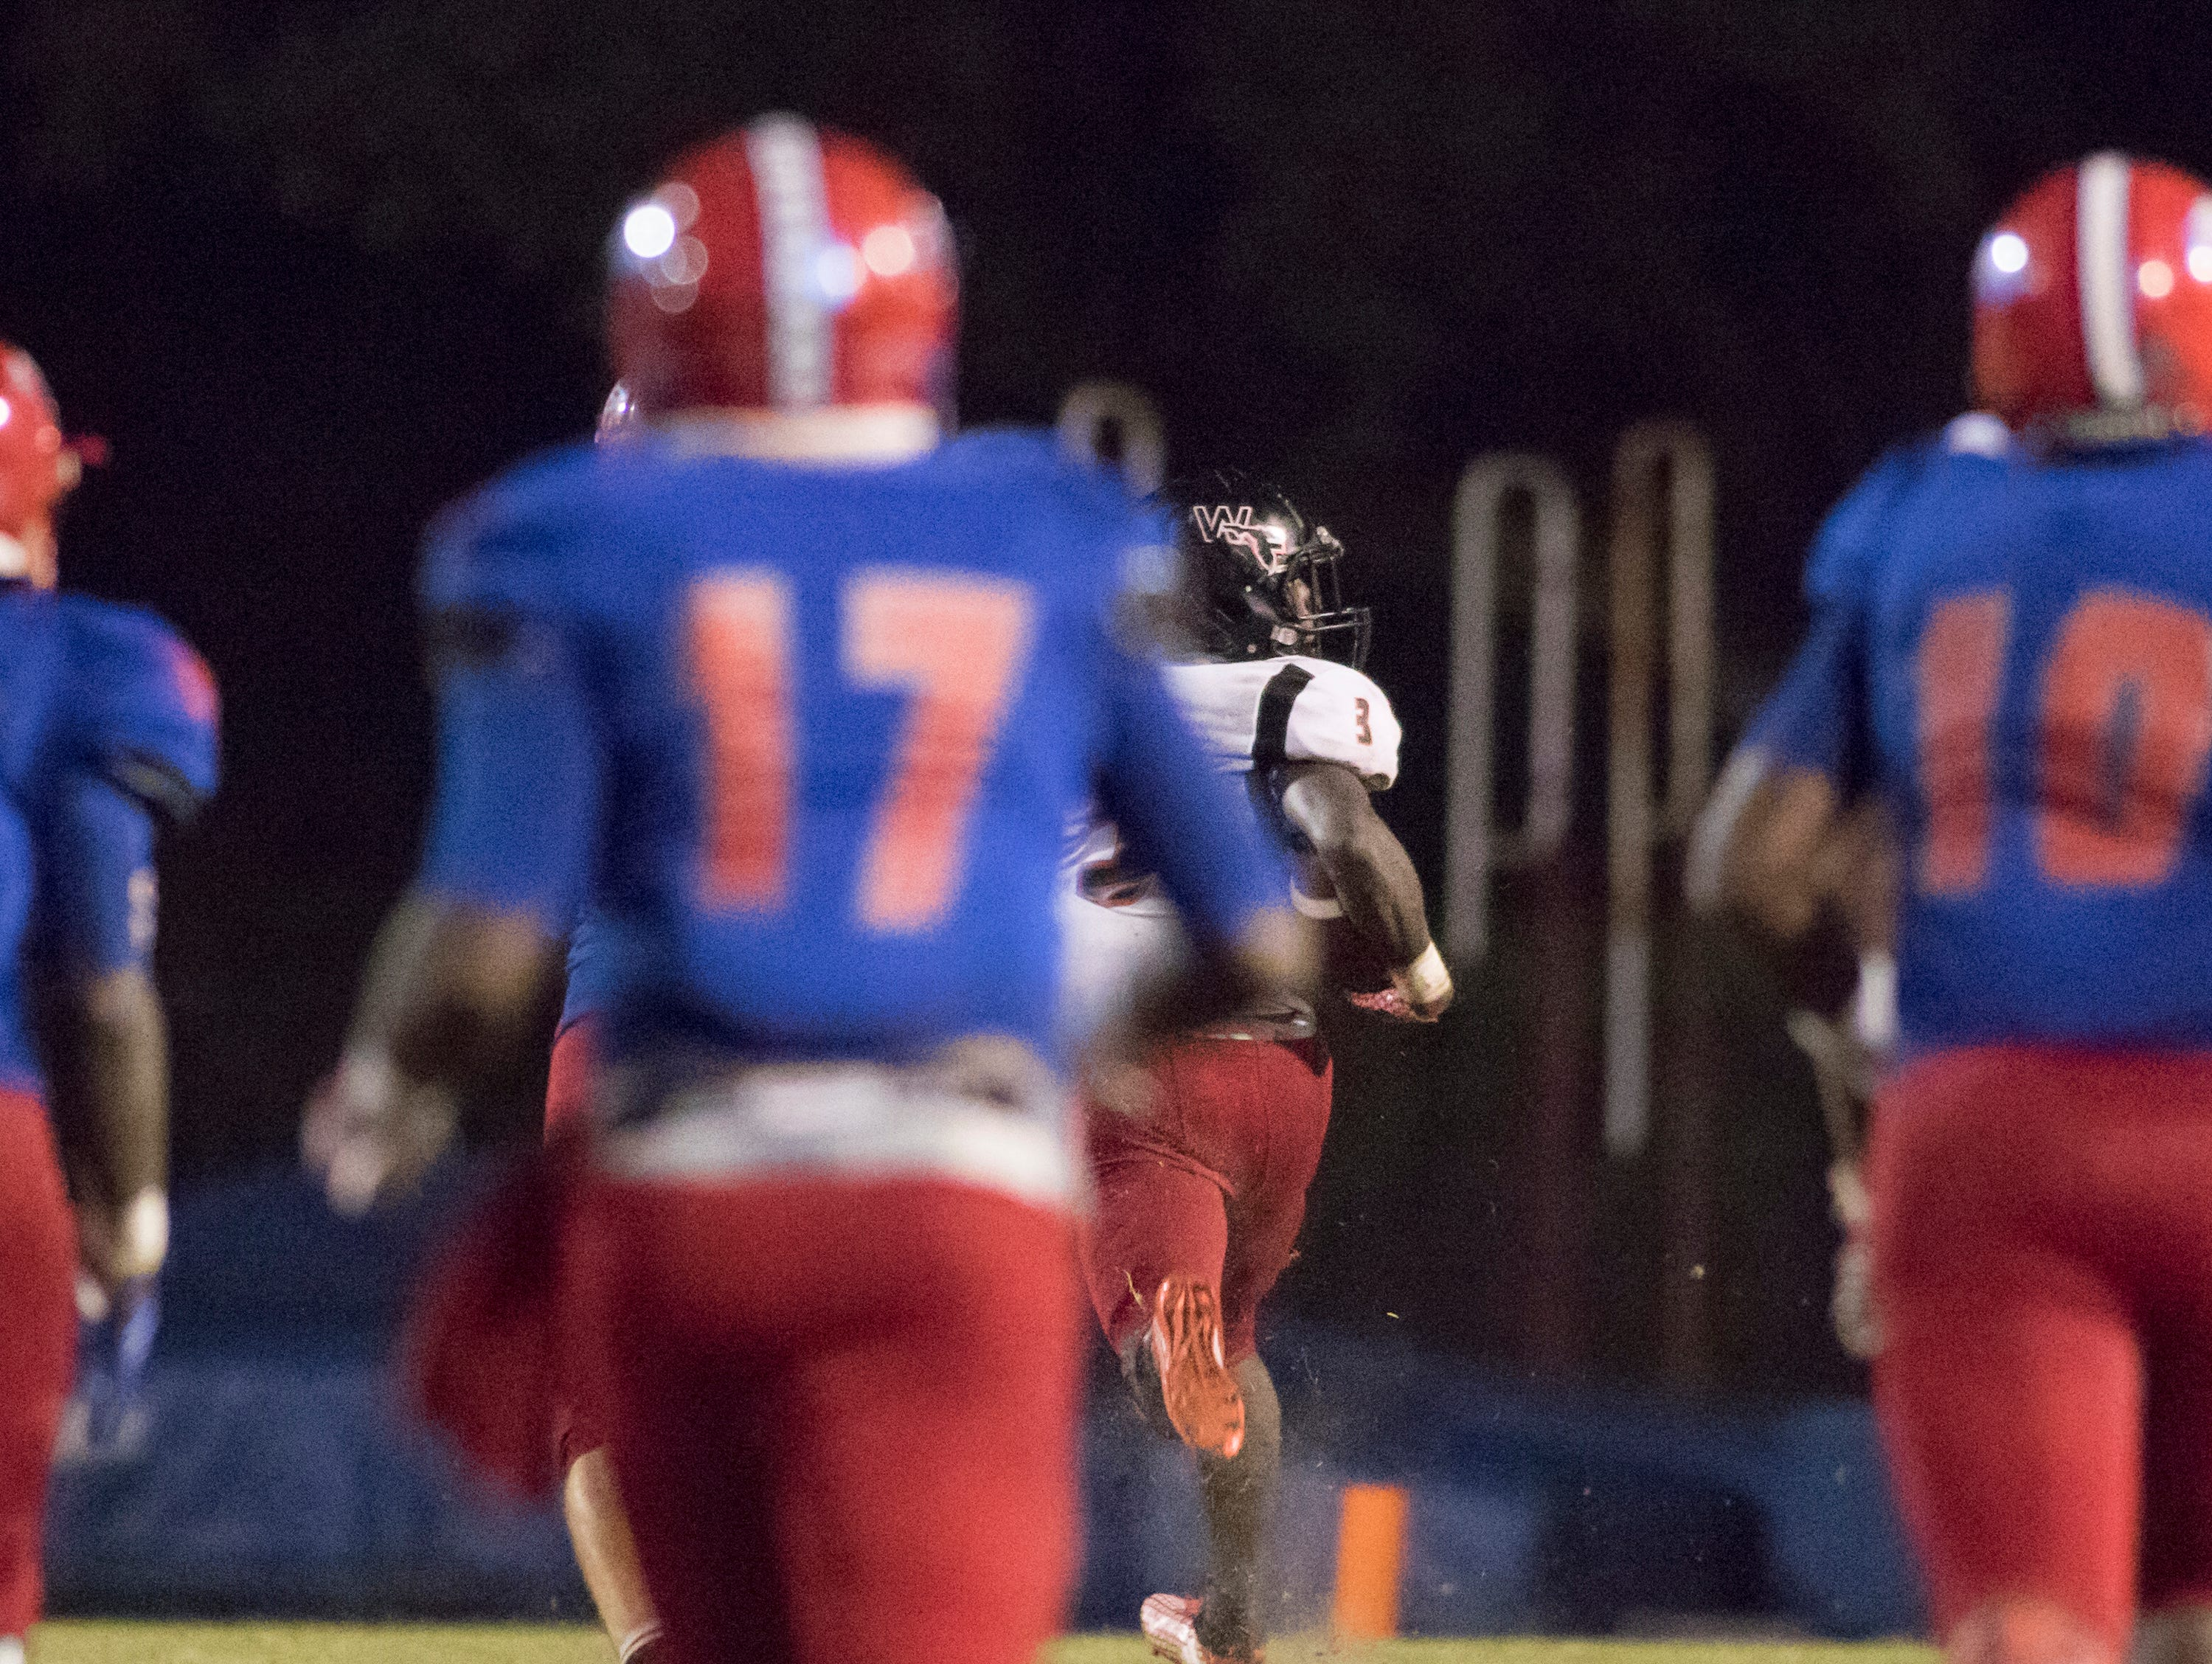 Keyshawn Swanson (3) breaks free for a touchdown during the West Florida vs Pine Forest football game at Pine Forest High School in Pensacola on Friday, October 5, 2018.  The Eagles' lead was cut to 24-19 after a successful extra point.